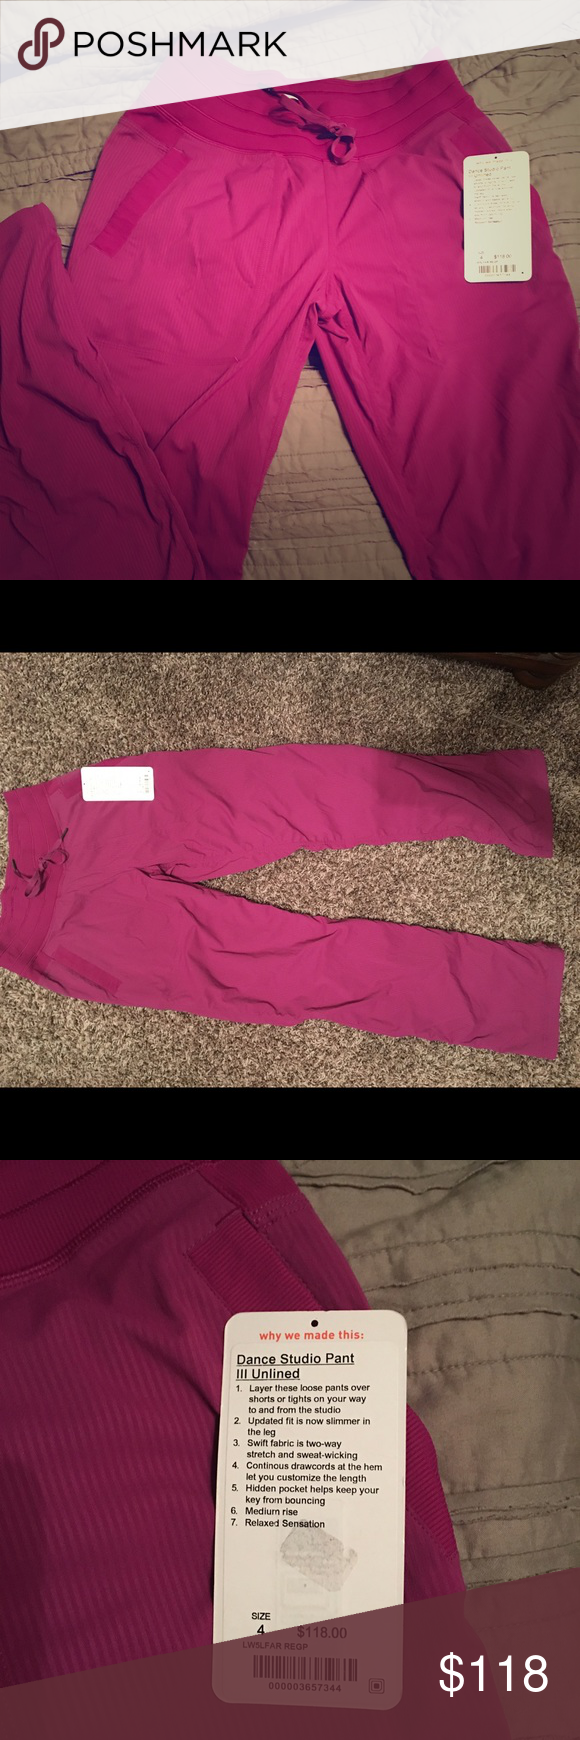 Lululemon studio dance III unlined size 4. NEW Brand new. Never worn. Beautiful Purple-pink color!! Just a tad to short for me so I need the tall ones!! I live to far to return :( lululemon athletica Pants Track Pants & Joggers